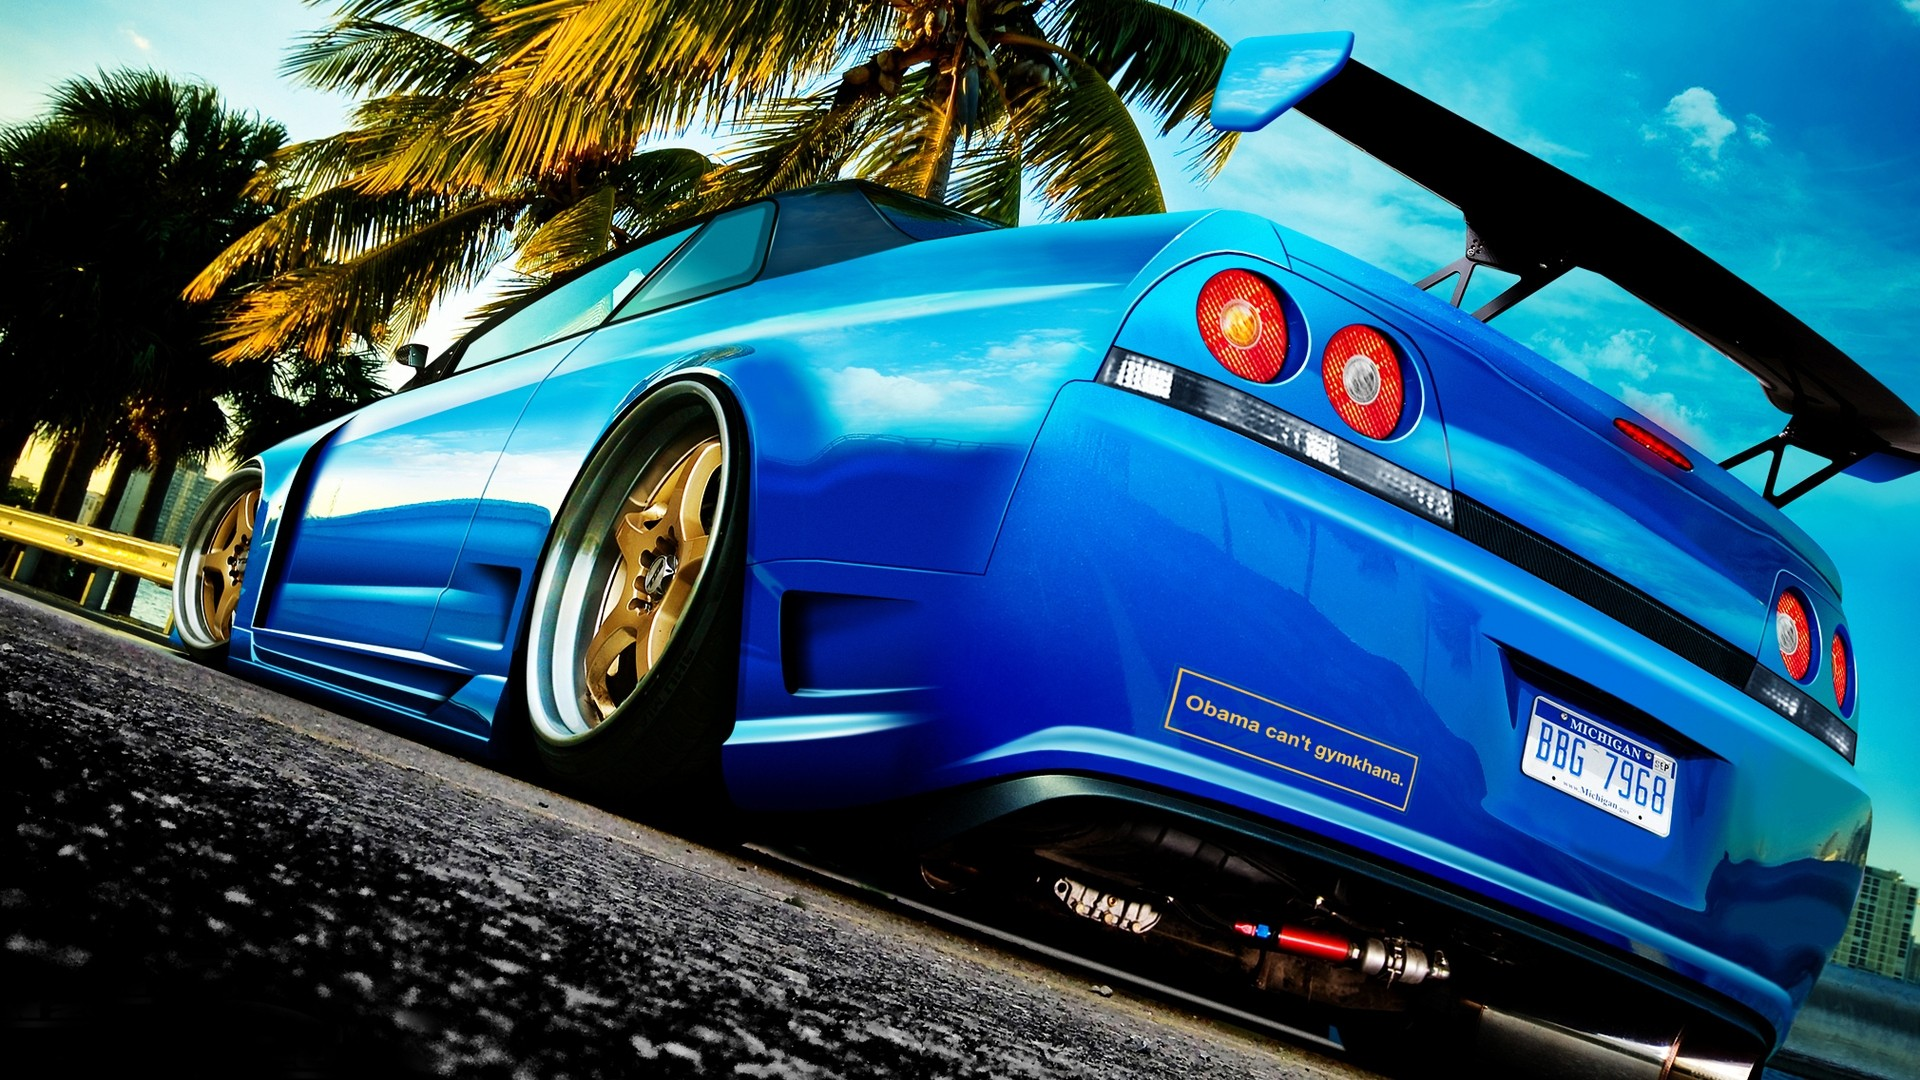 Blue Cars Wallpaper 1920x1080 Blue Cars Tuning Nissan Skyline R33 1920x1080